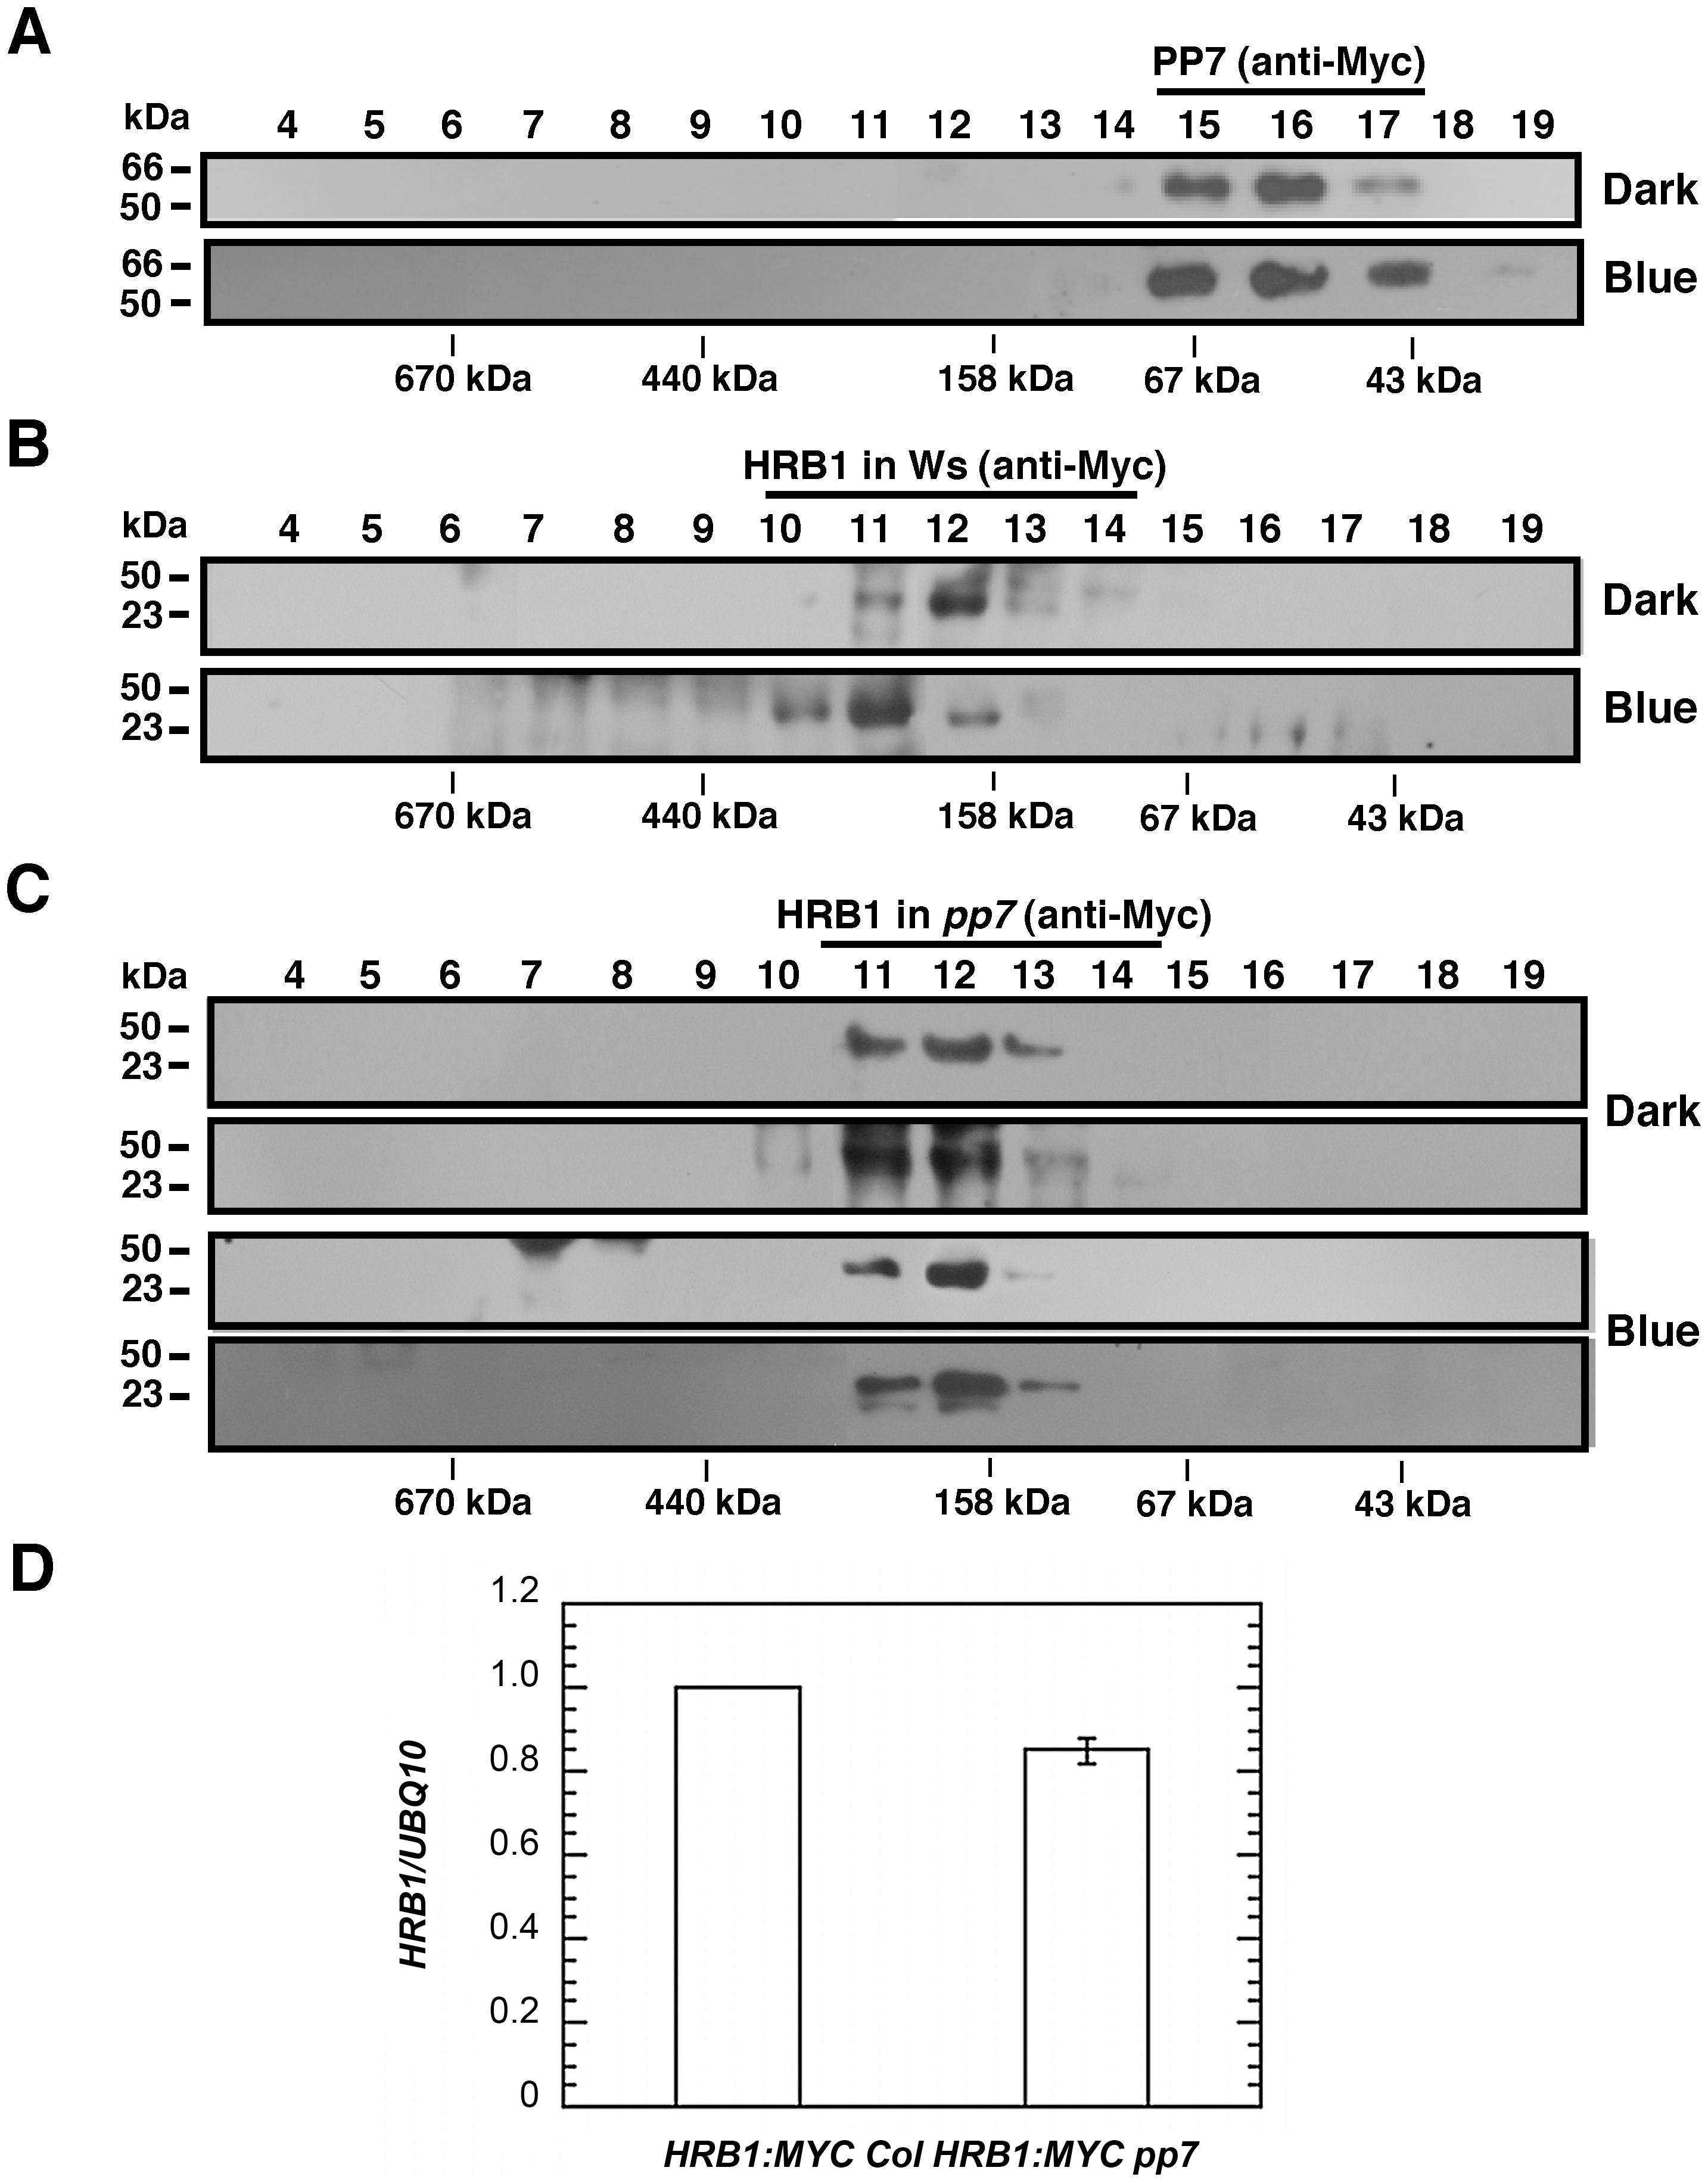 PP7 affects the assembly of a functional HRB1 protein complex.